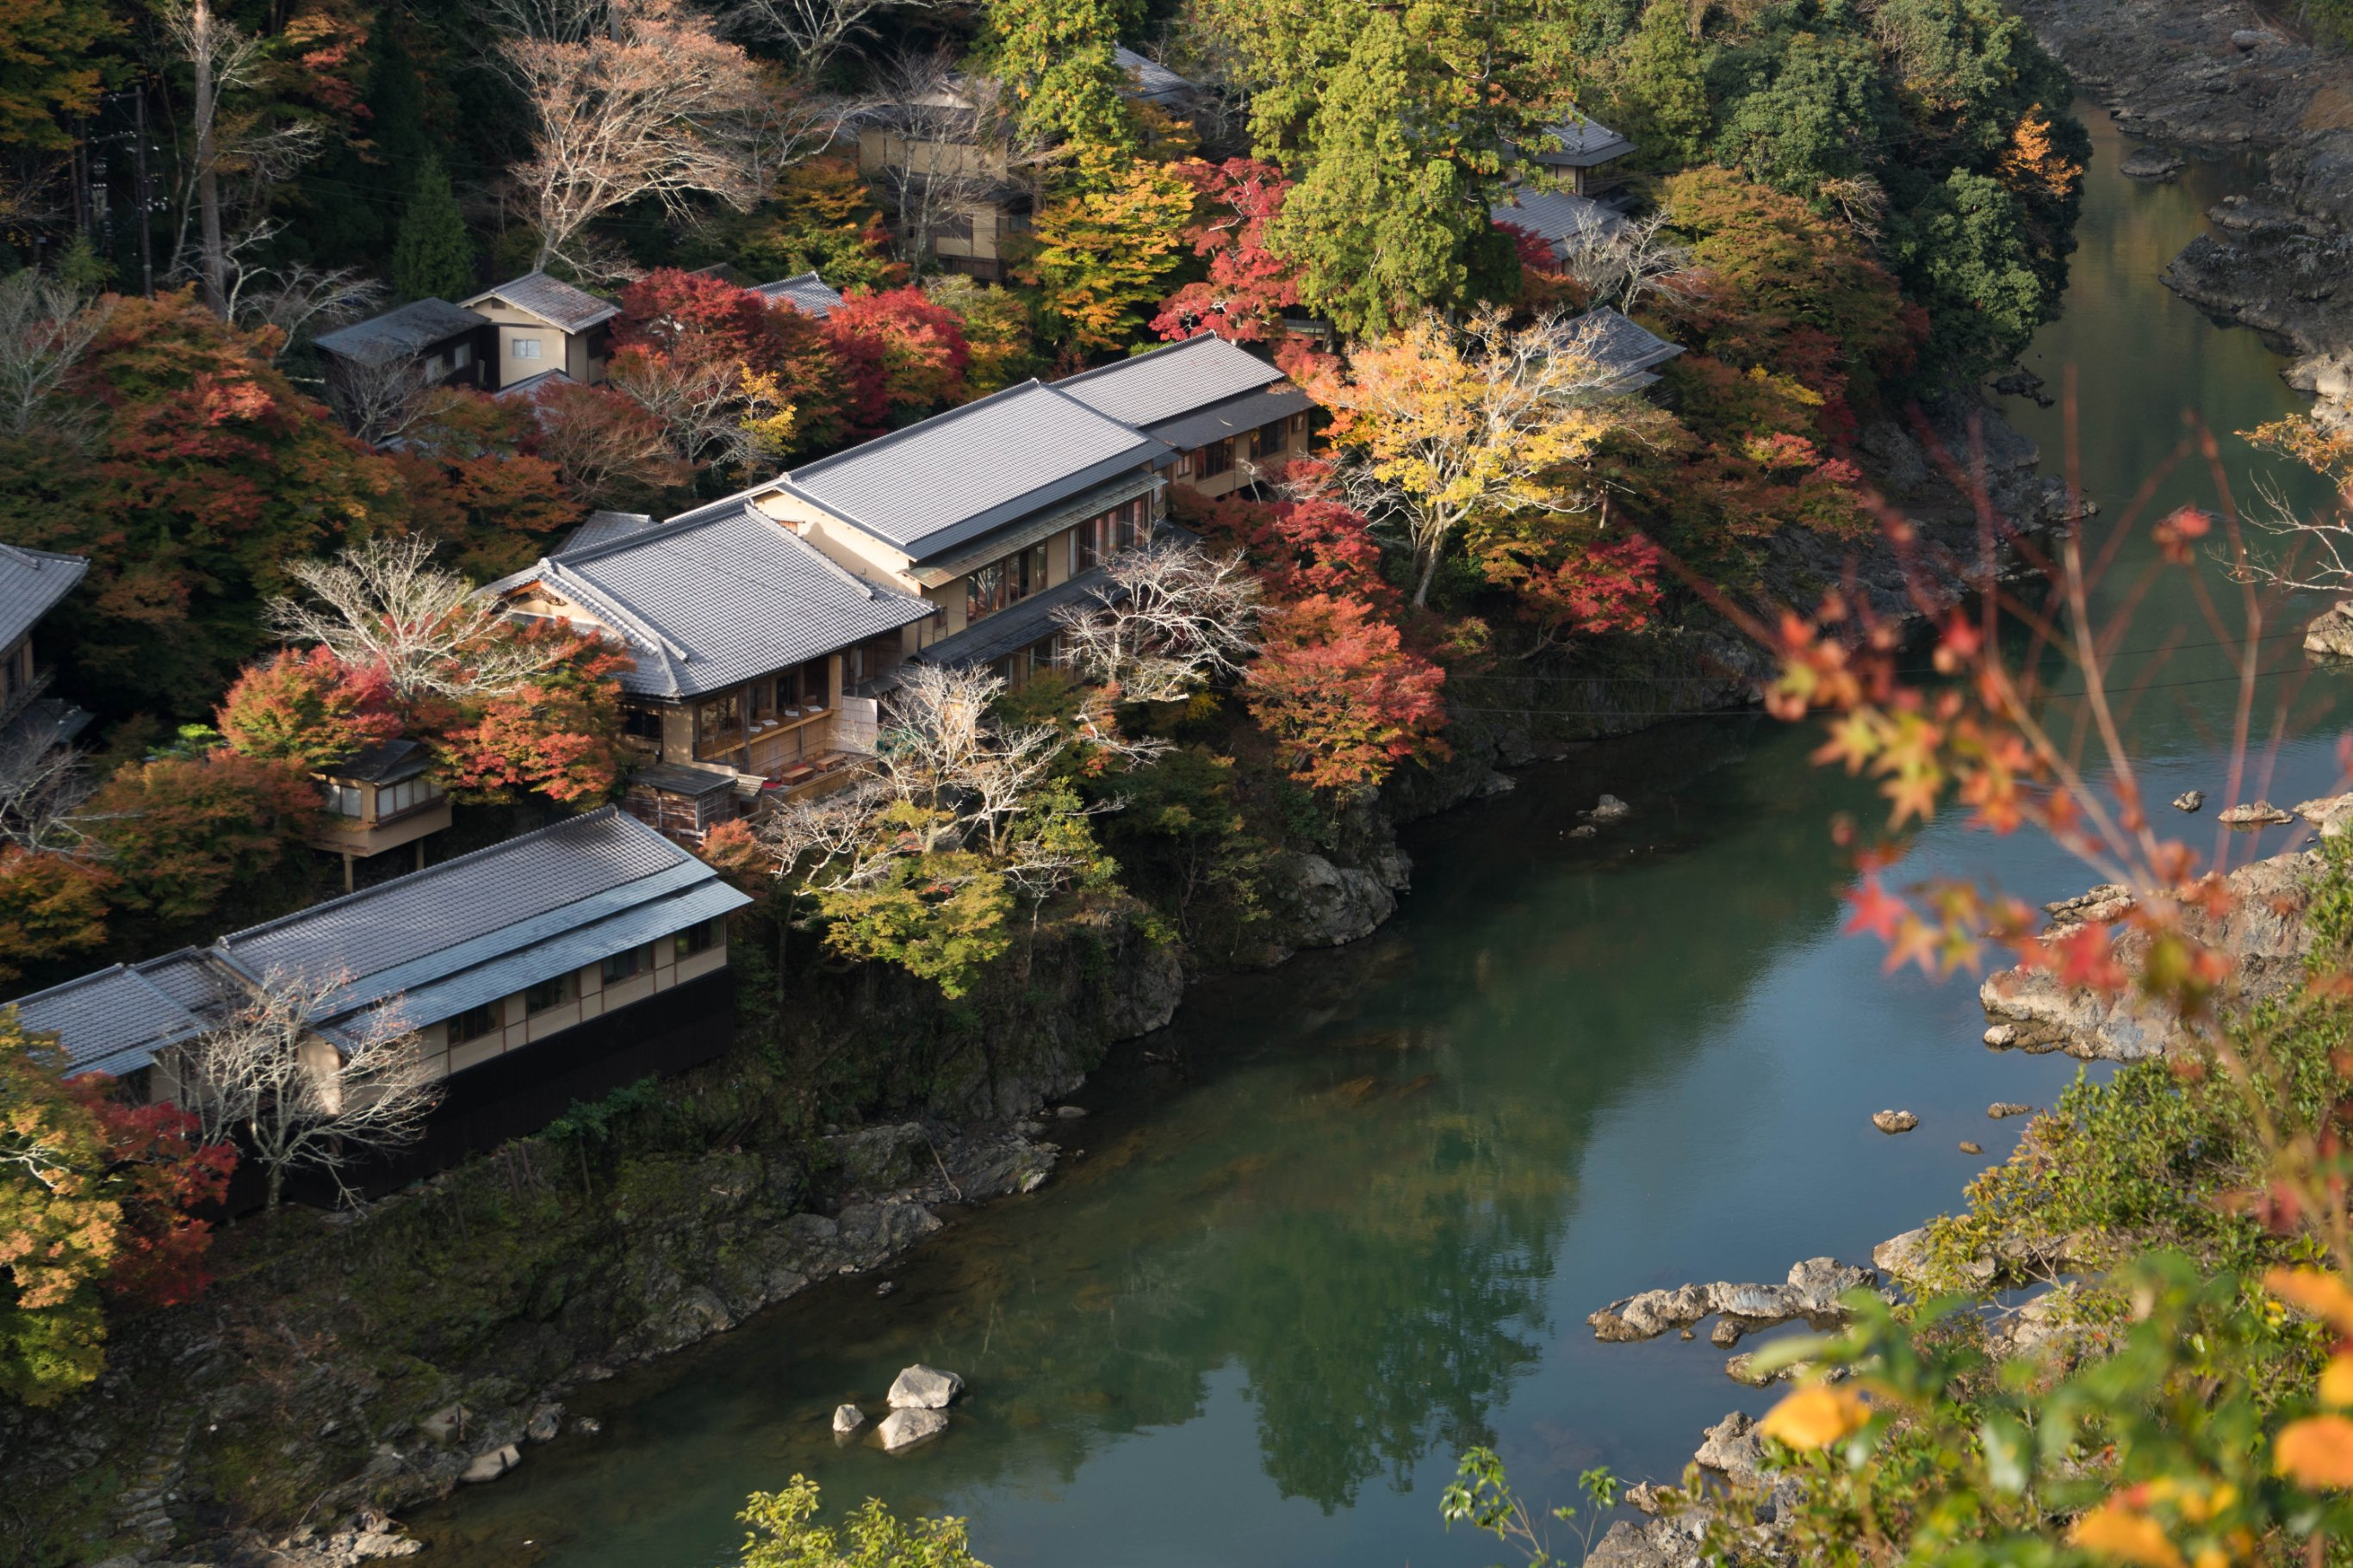 16-Day Authentic Explore Japan - Japan Itinerary